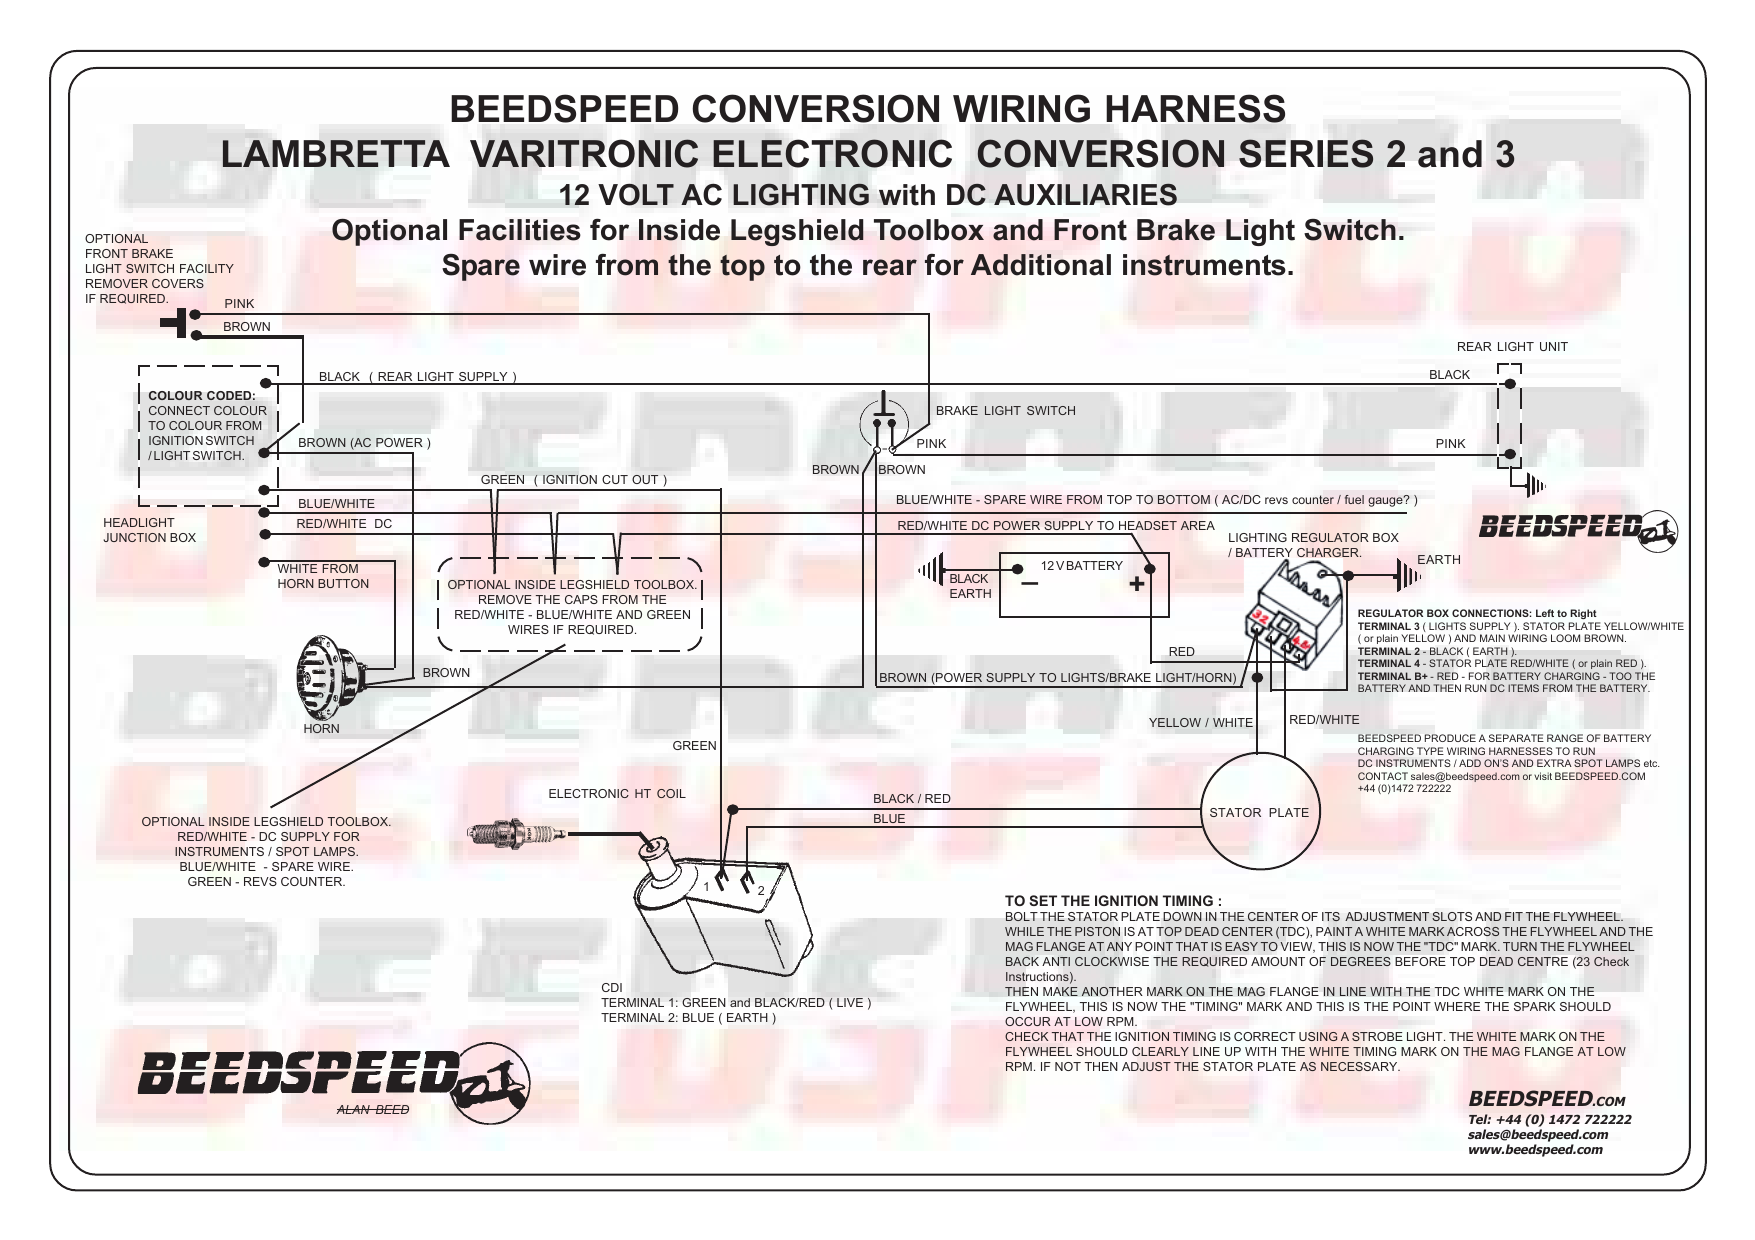 beedspeed conversion wiring harness lambretta rh studylib net 3 Wire Headlight Wiring Diagram Motorcycle Headlight Wiring Diagram